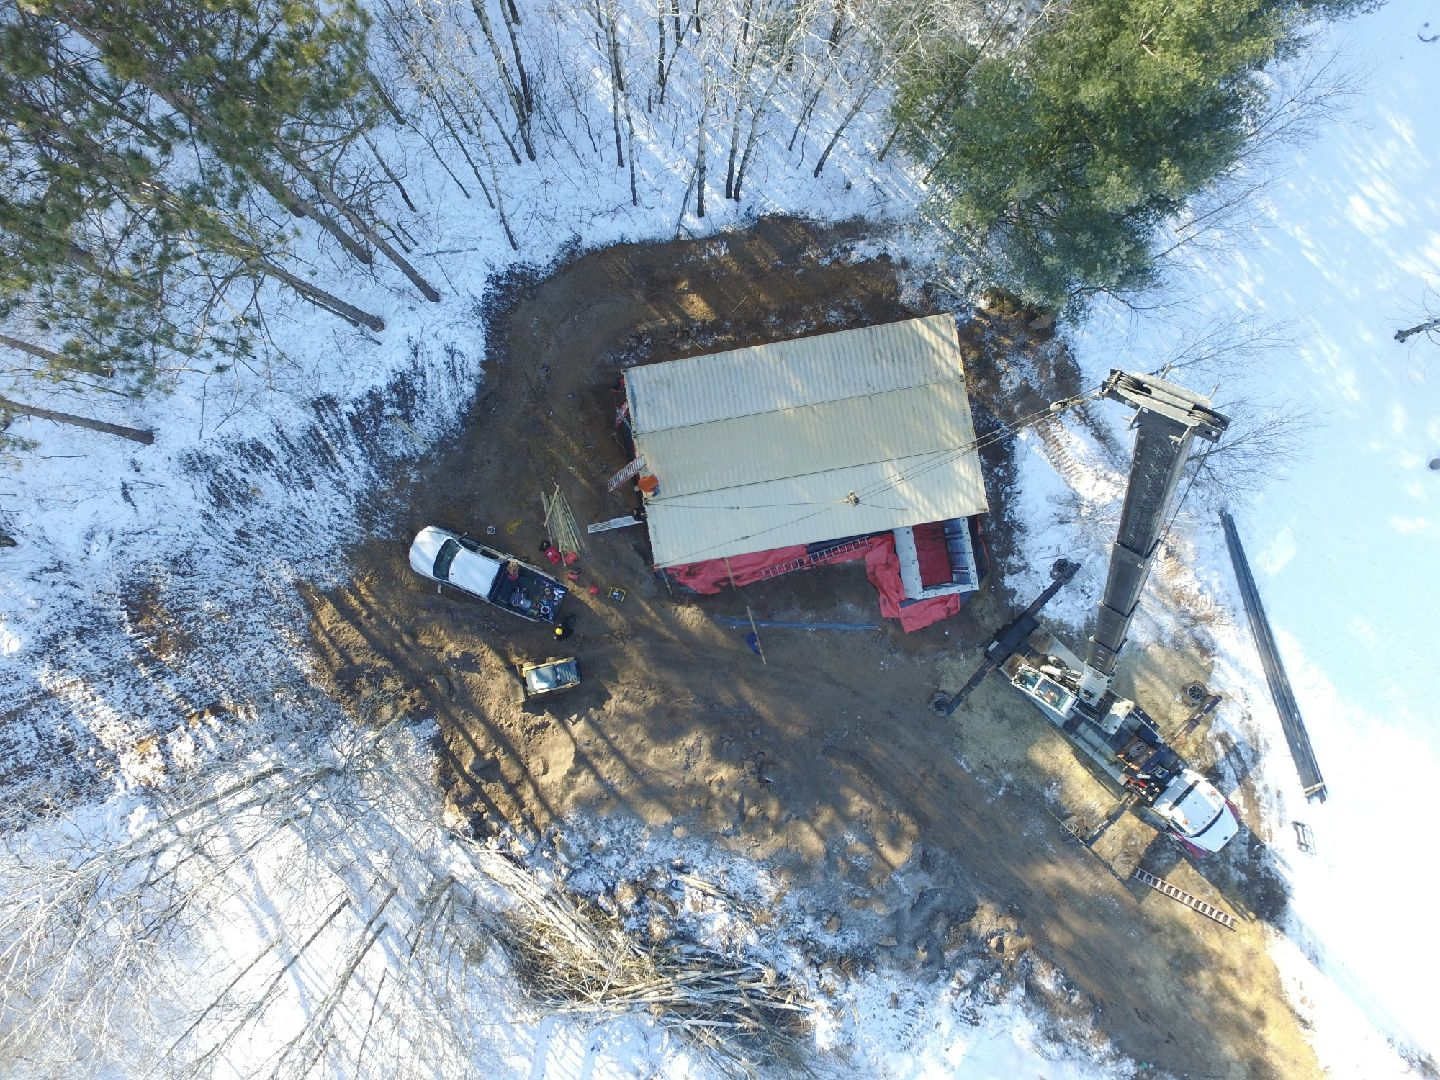 Drone view of 3 container sitting on the foundation of a house with the crane next to the house